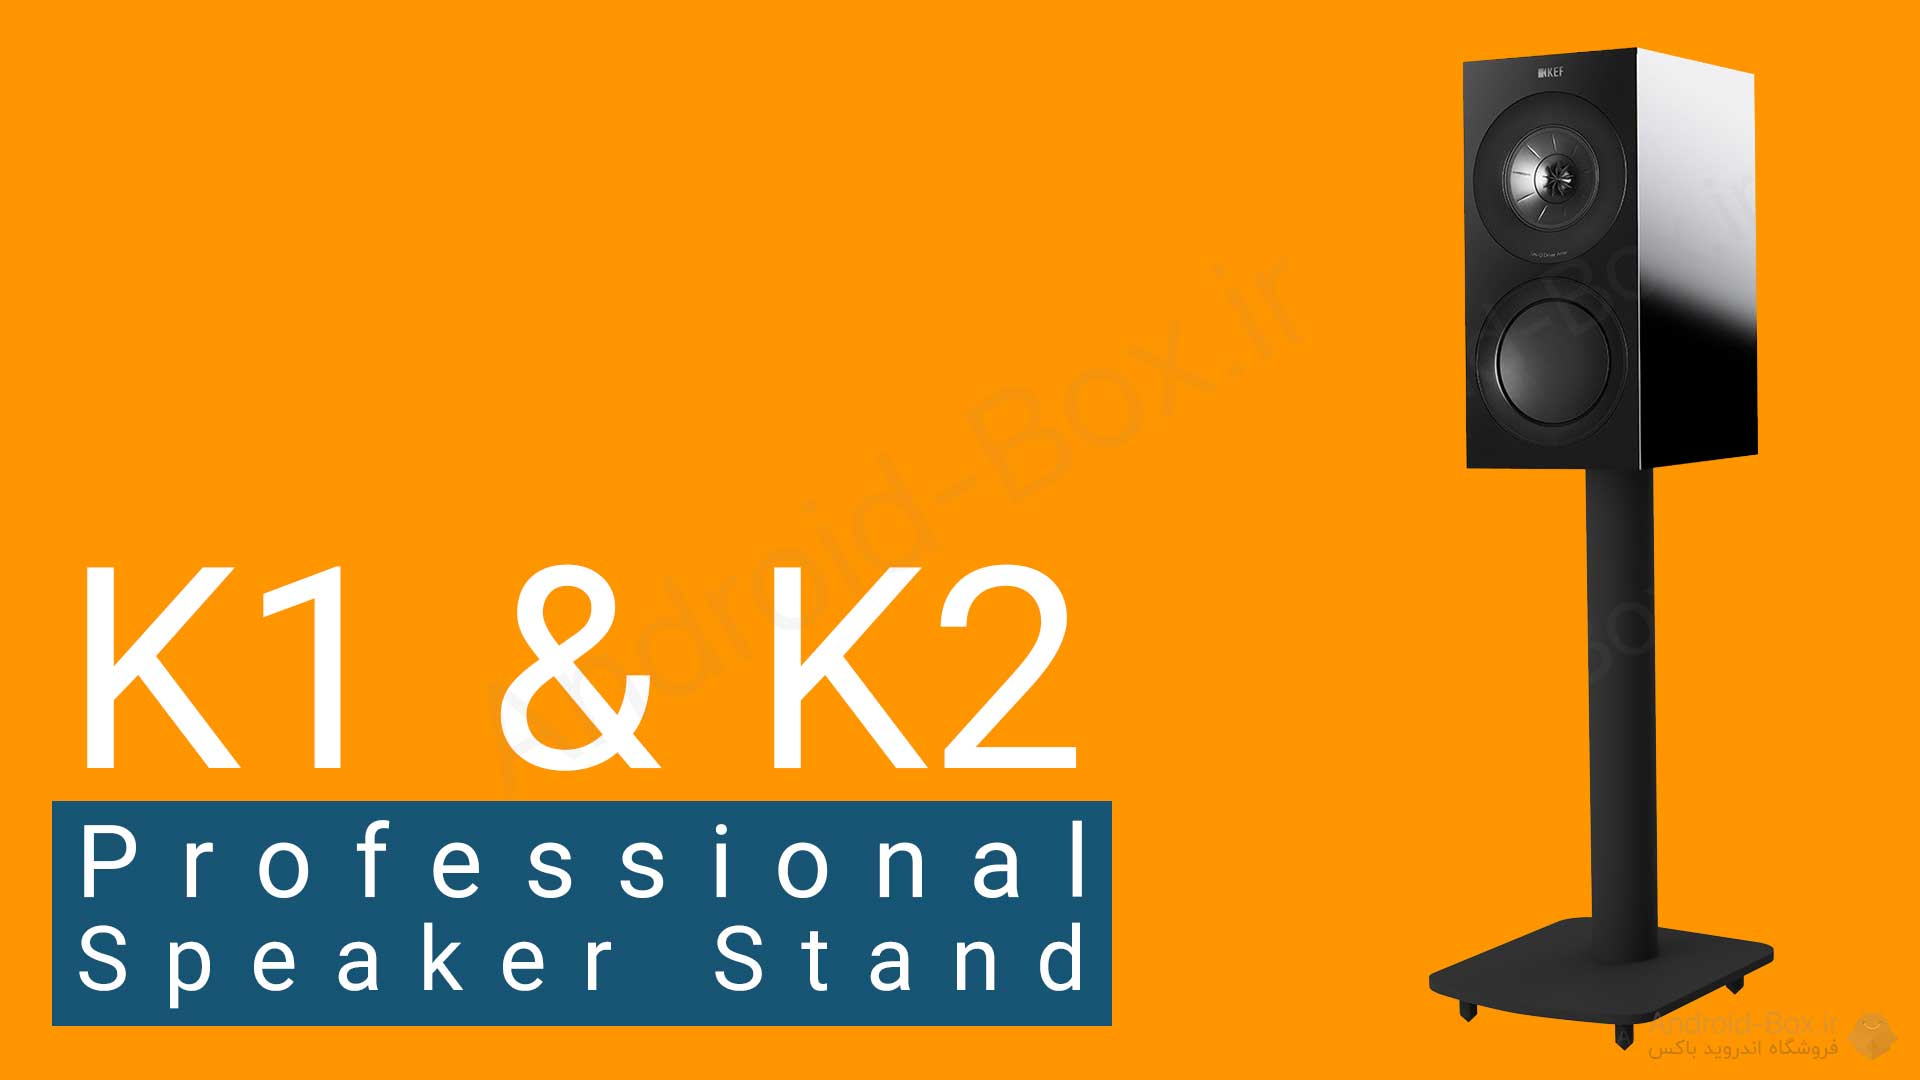 Android Box Dot Ir PRODUCTS Professional Speaker Stands K Series Banner 01